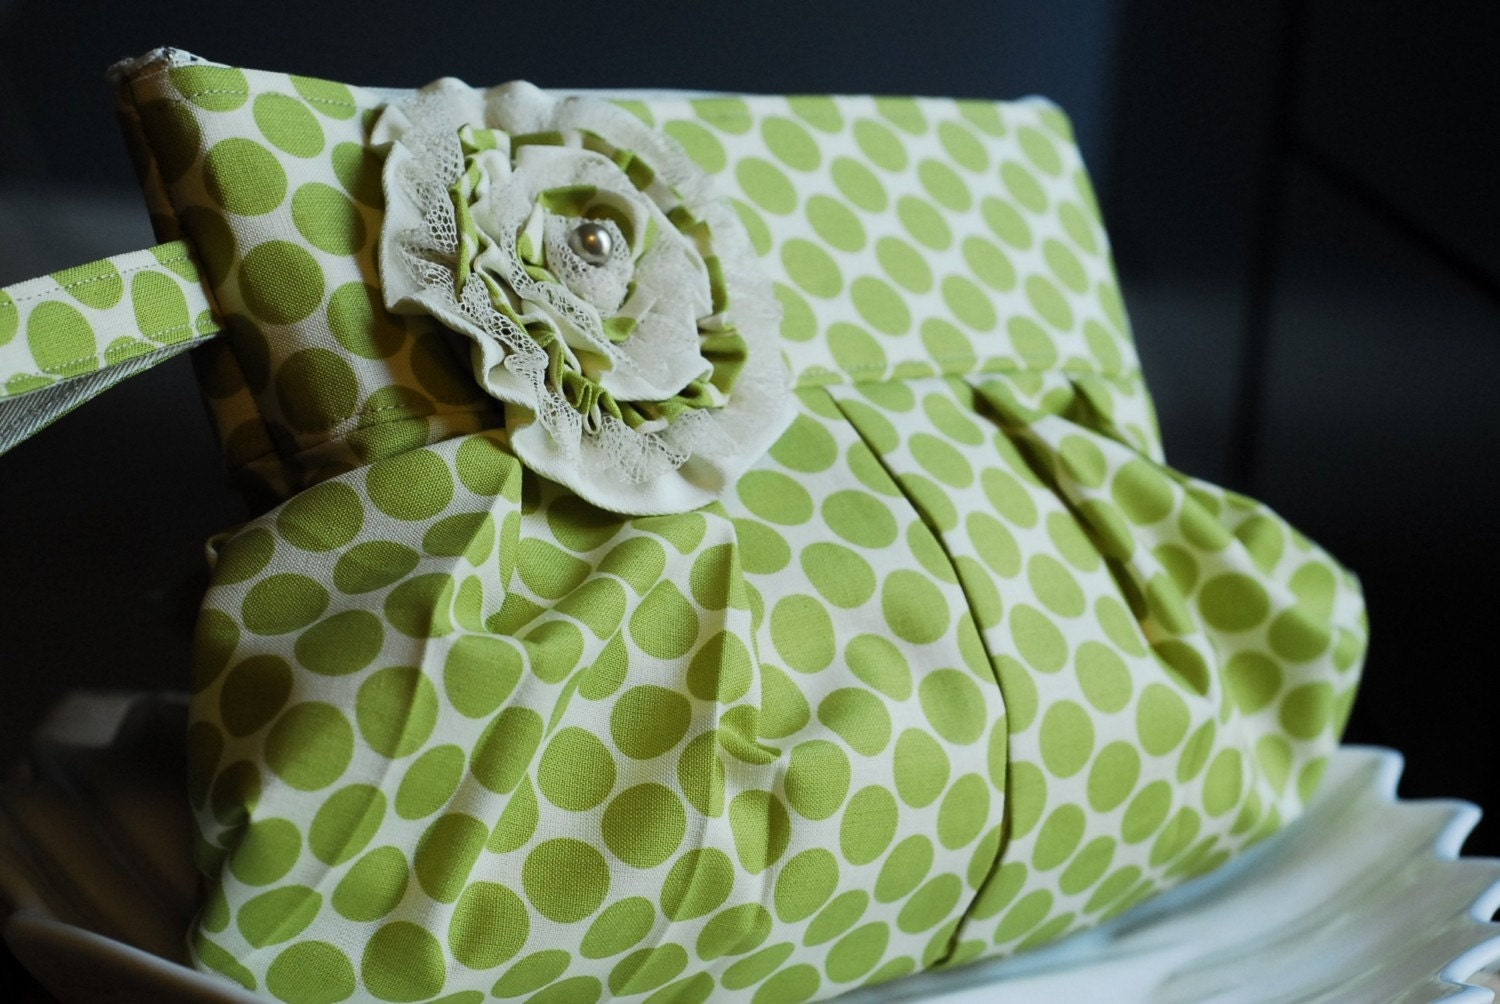 The Emery Lin. Day to Night Clutch and Wristlet. Amy Butler - Full Moon polka dot in Lime